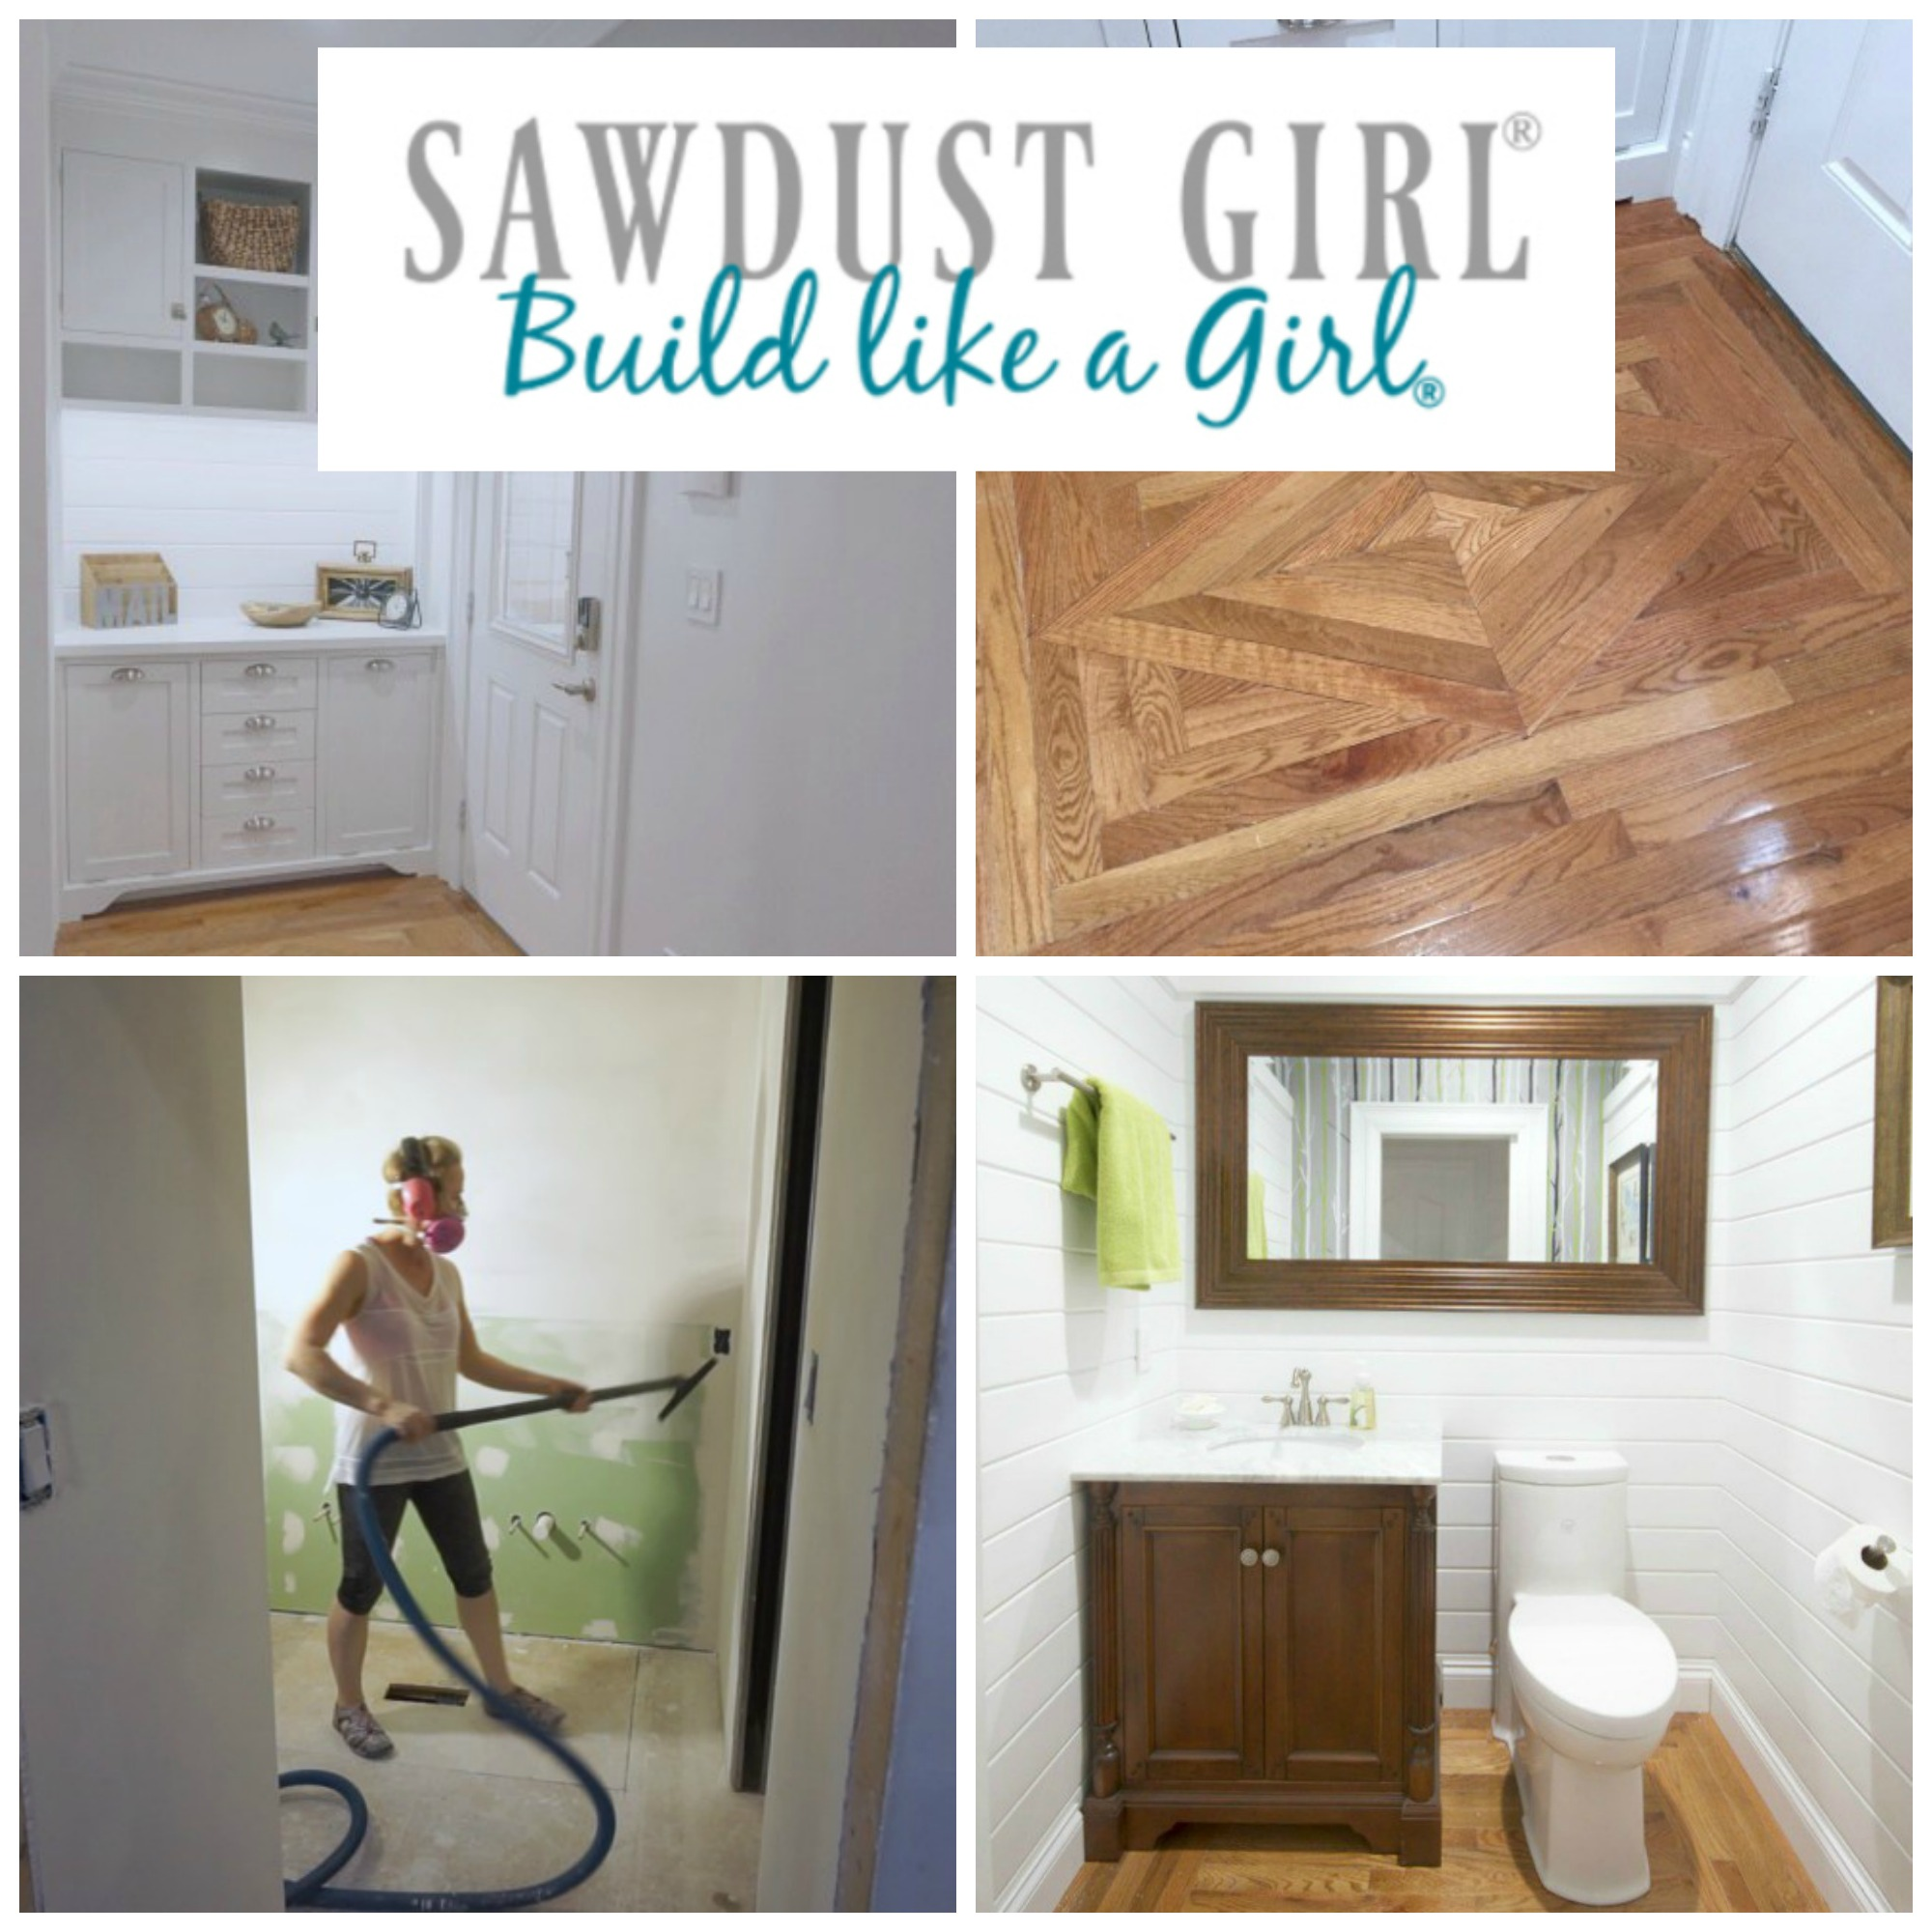 Sawdust Girl - Blogs you should read - Plaster & Disaster